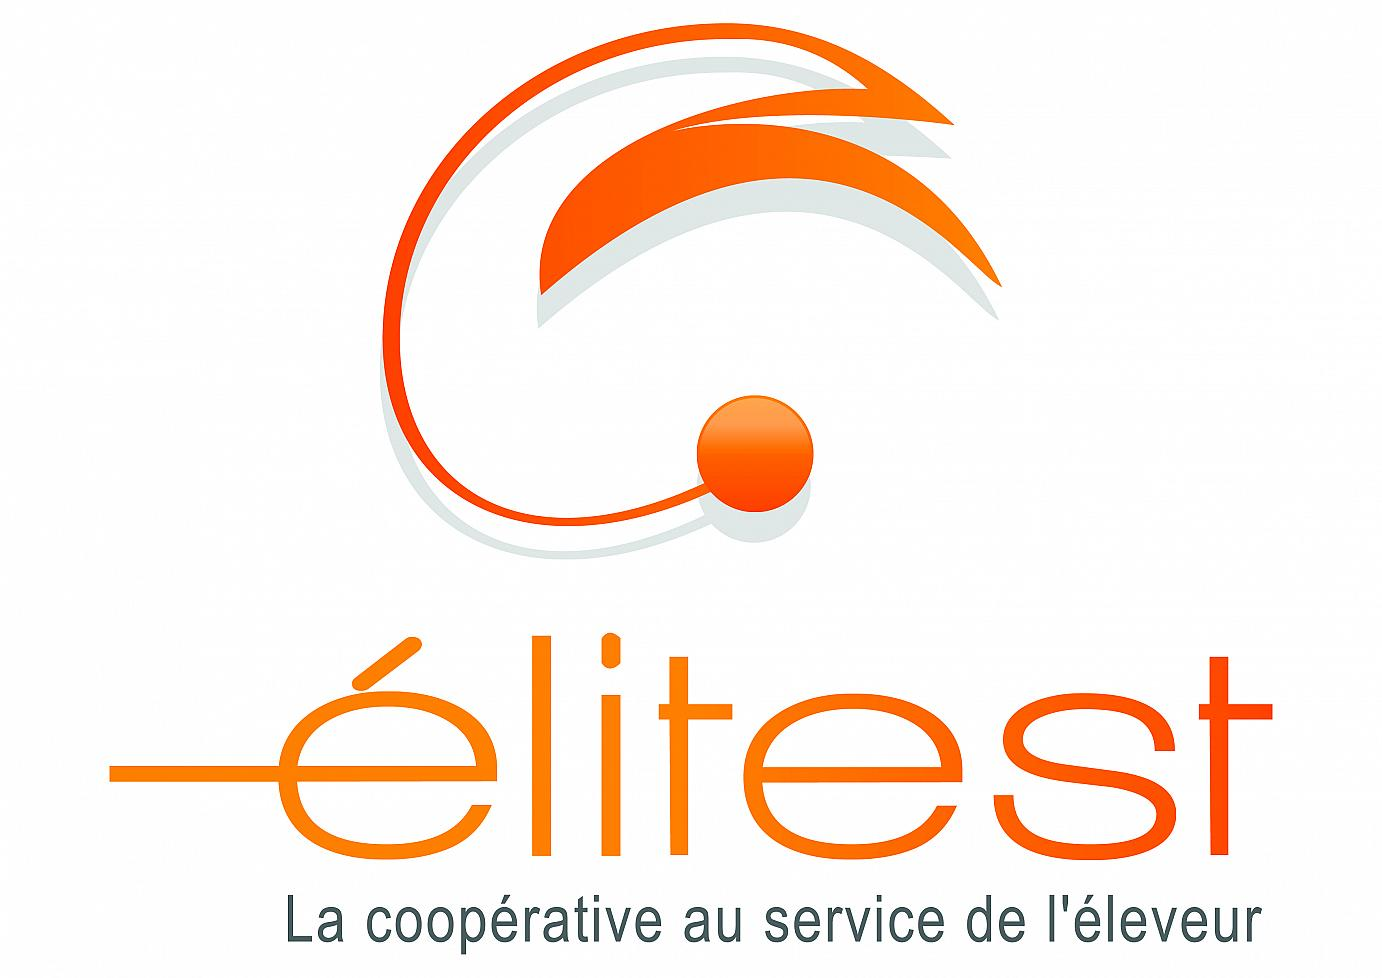 Elitest logo